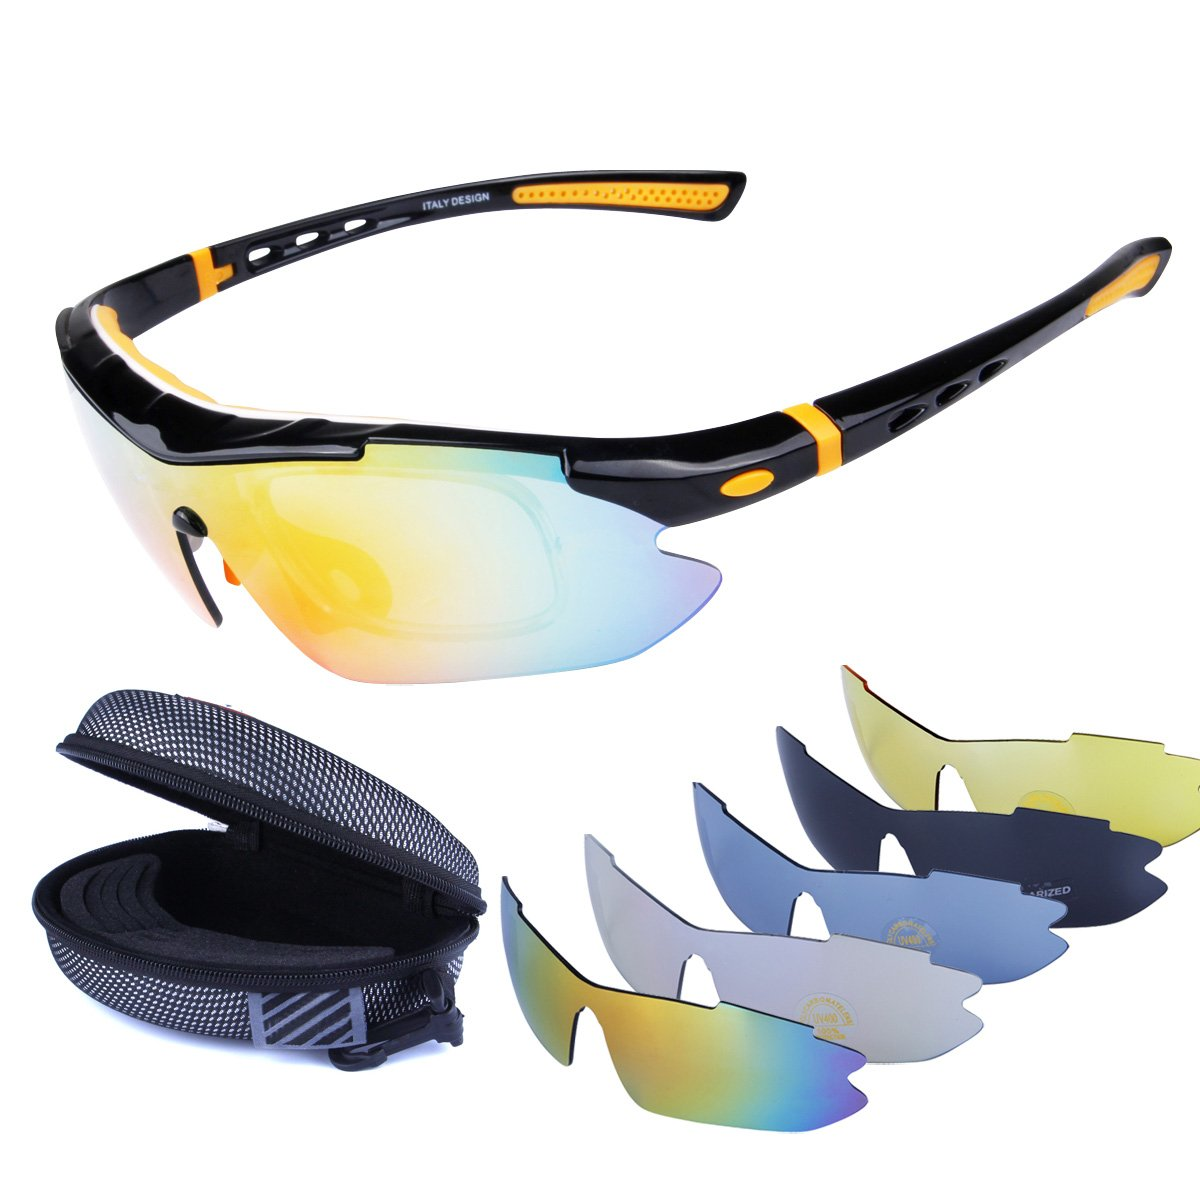 19d5e0a81db4 Polarized Sports Sunglasses Cycling Baseball Running Fishing Driving Golf  Hiking Biking Outdoor Glasses with 5 Interchangeable Lenses OTG Motorcycle  Bicycle ...